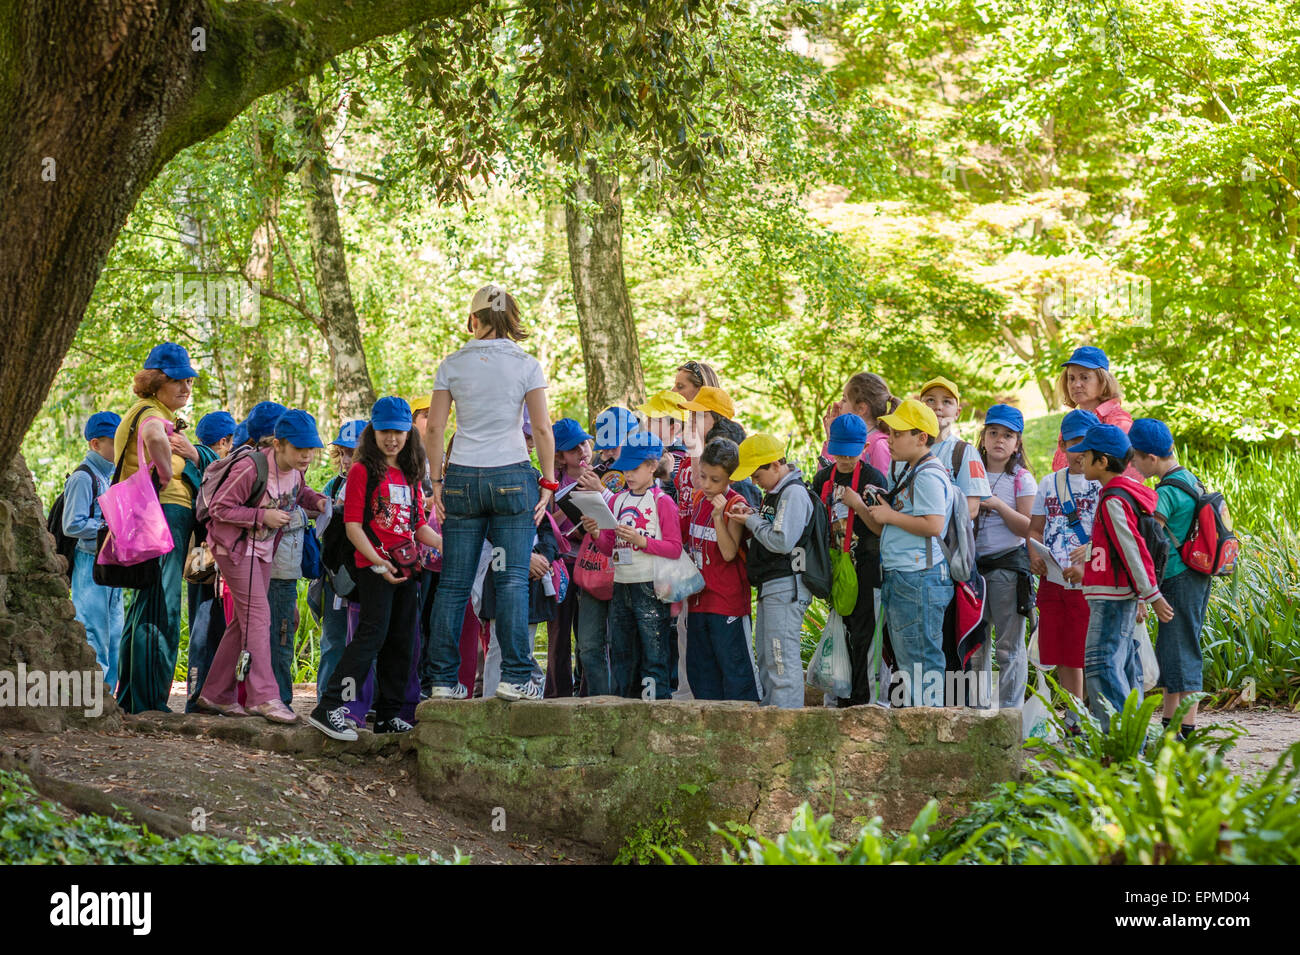 Ninfa, Lazio, Italy. Italian schoolchildren on a visit to the spectacular gardens set in a ruined medieval village - Stock Image